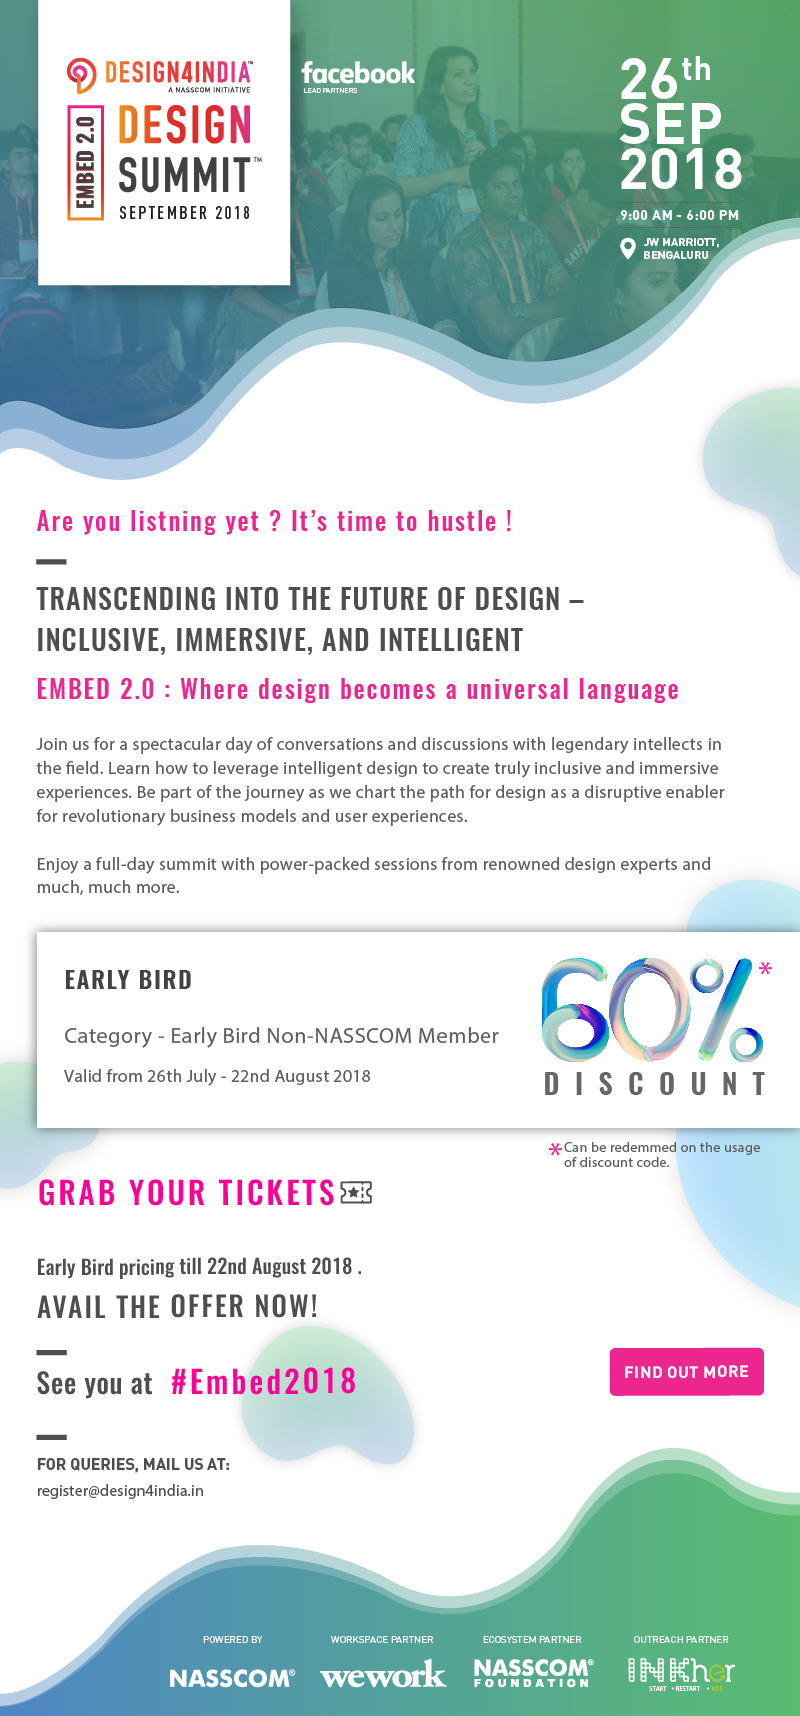 embed-2-0-a-design-summit-designing-an-inclusive-immersive-and-intelligent-future